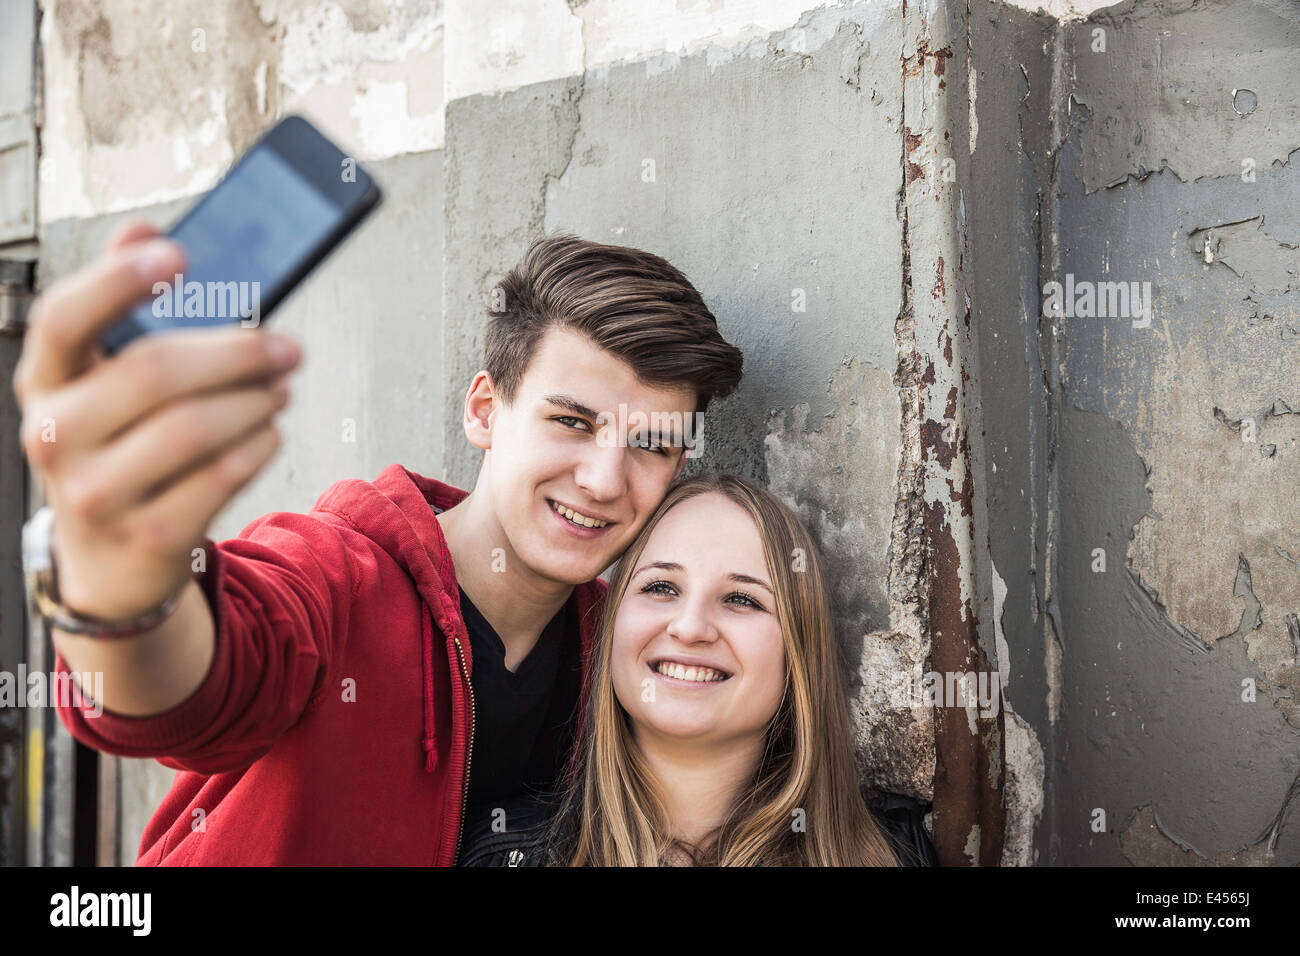 Teenage couple taking selfie by abandoned building - Stock Image